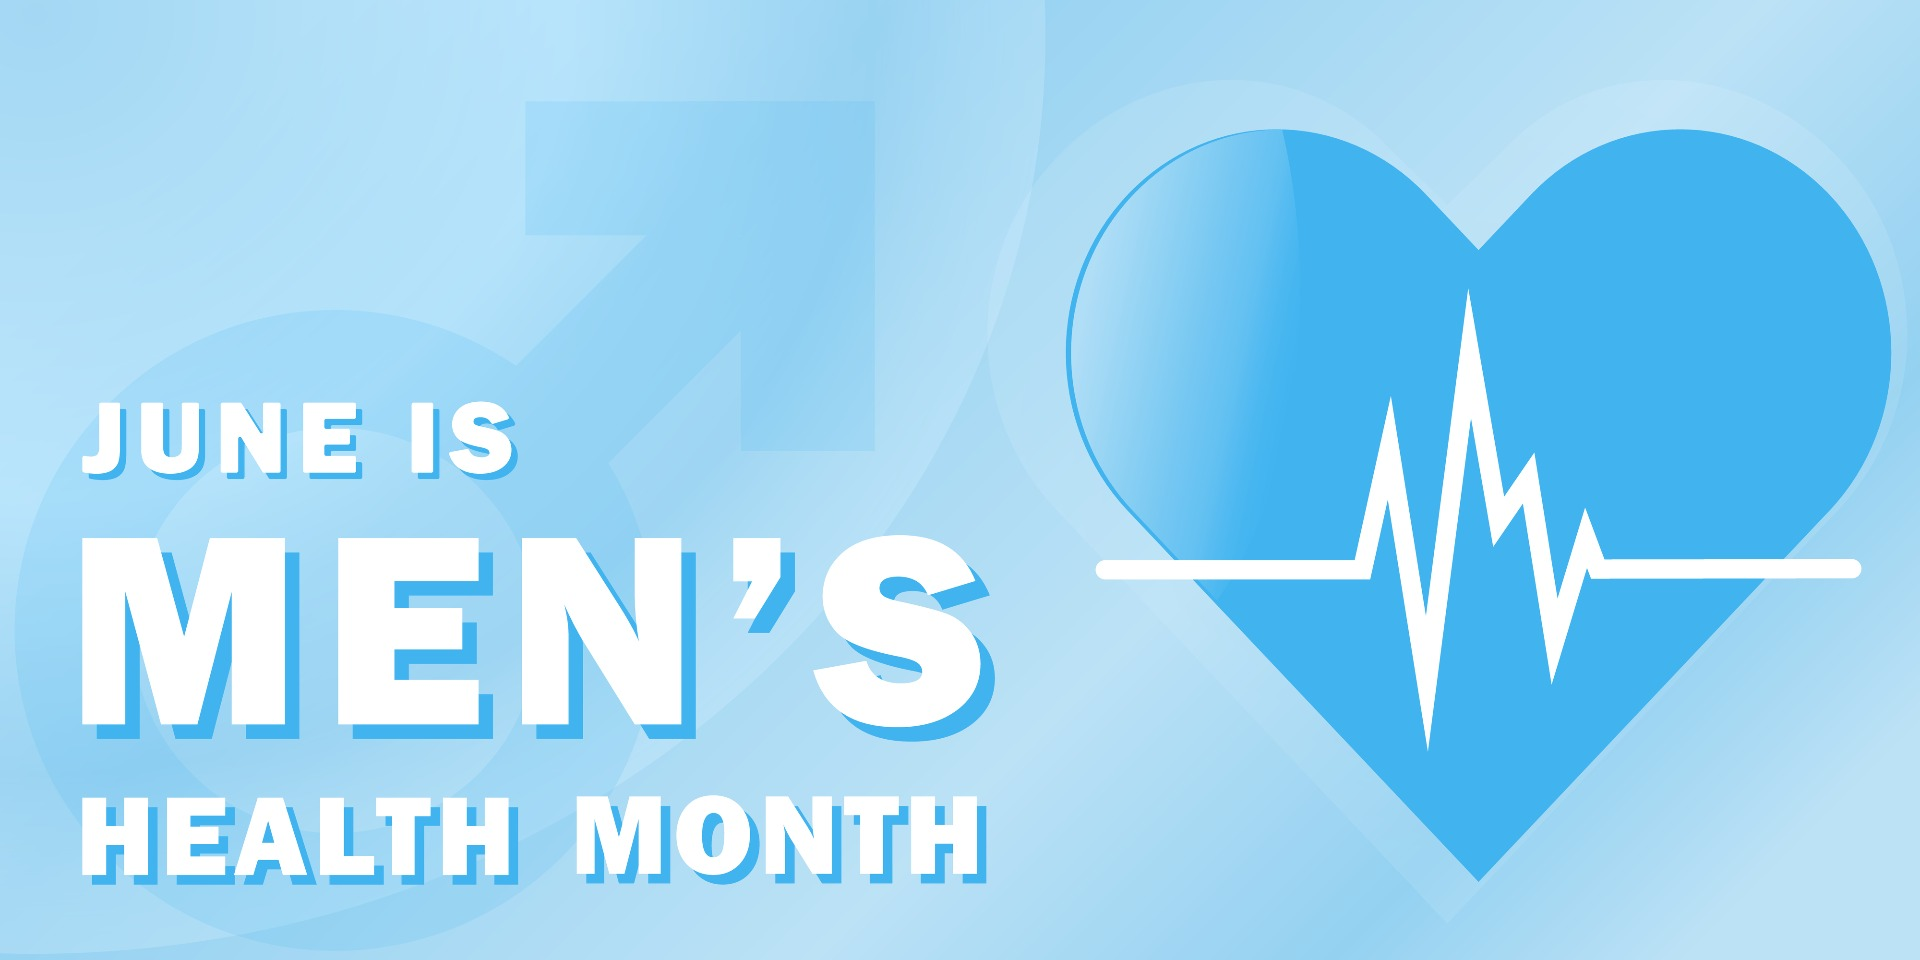 Blue graphic that says June is Men's Health Month